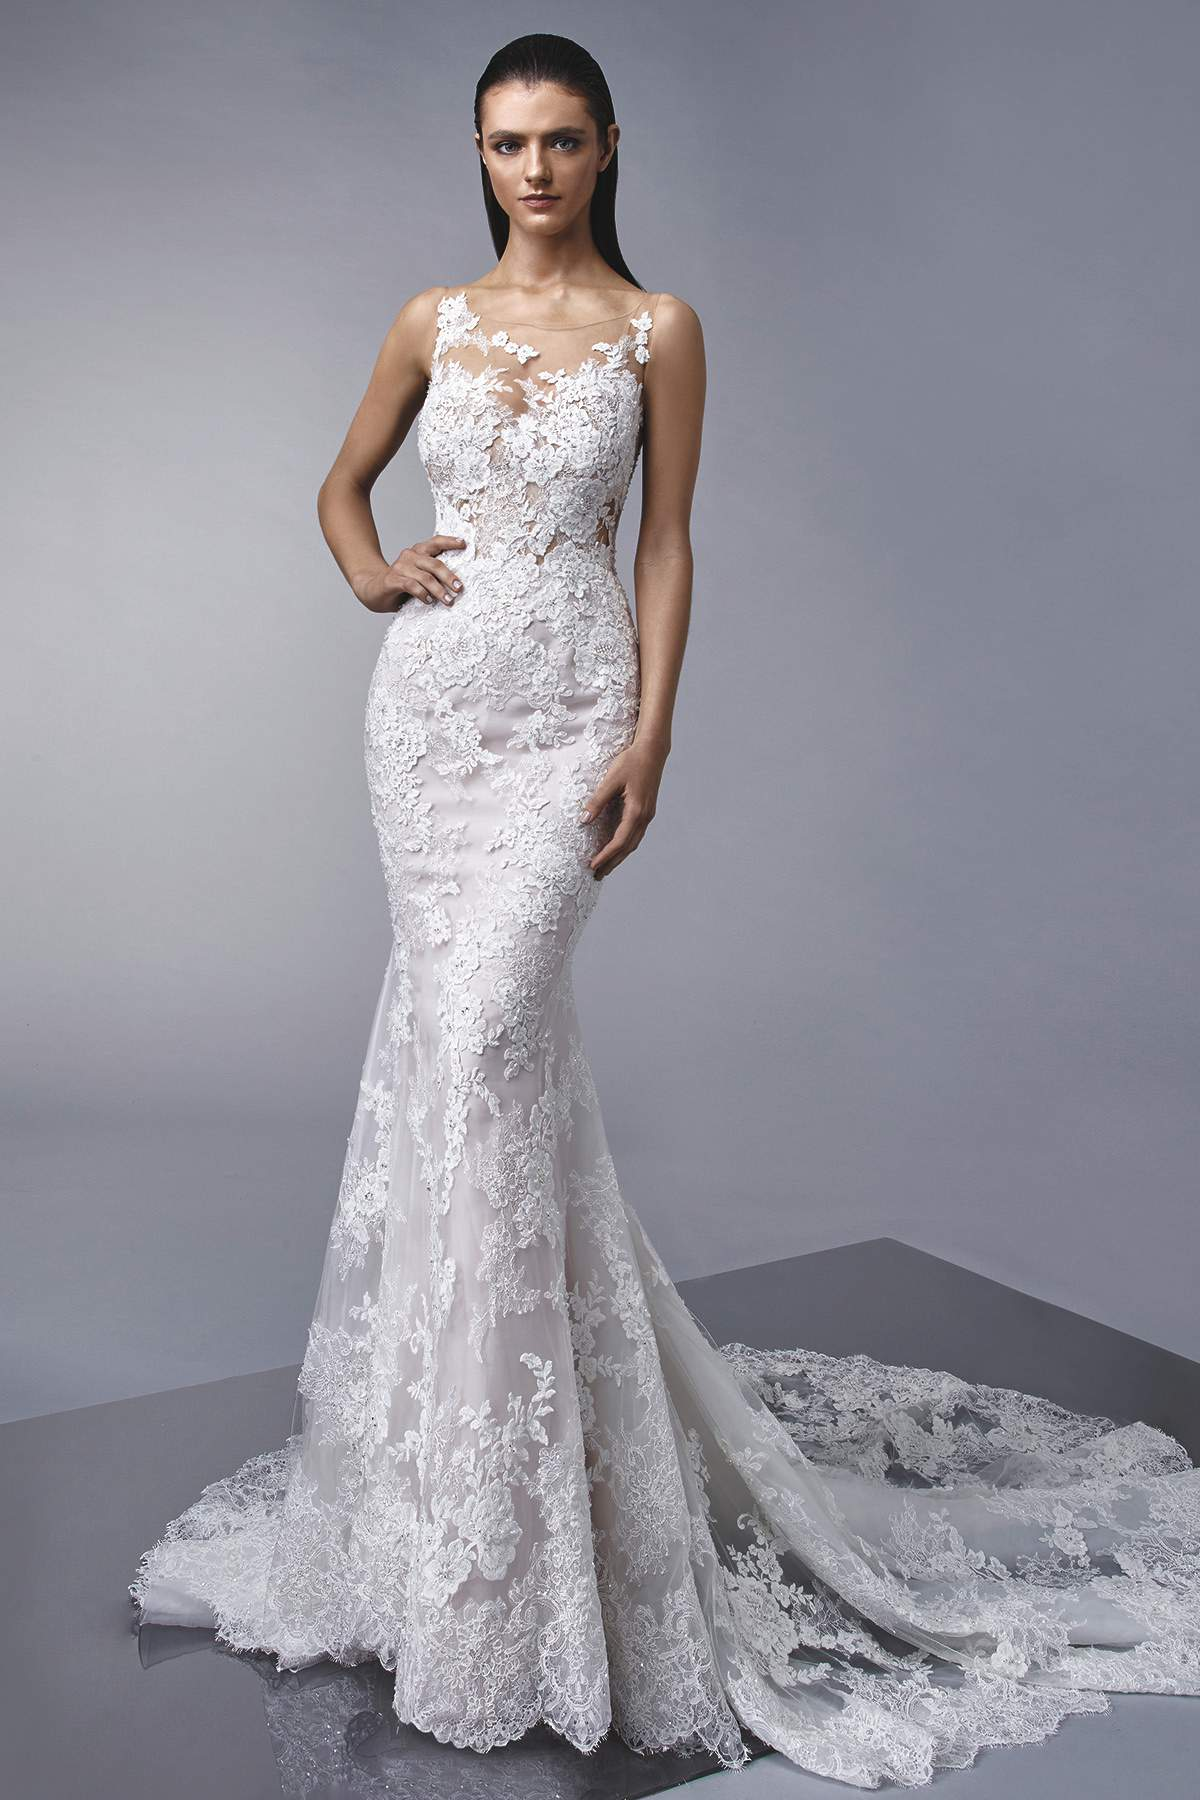 0b166b51a4c Mindy by Enzoani - Find Your Dream Dress